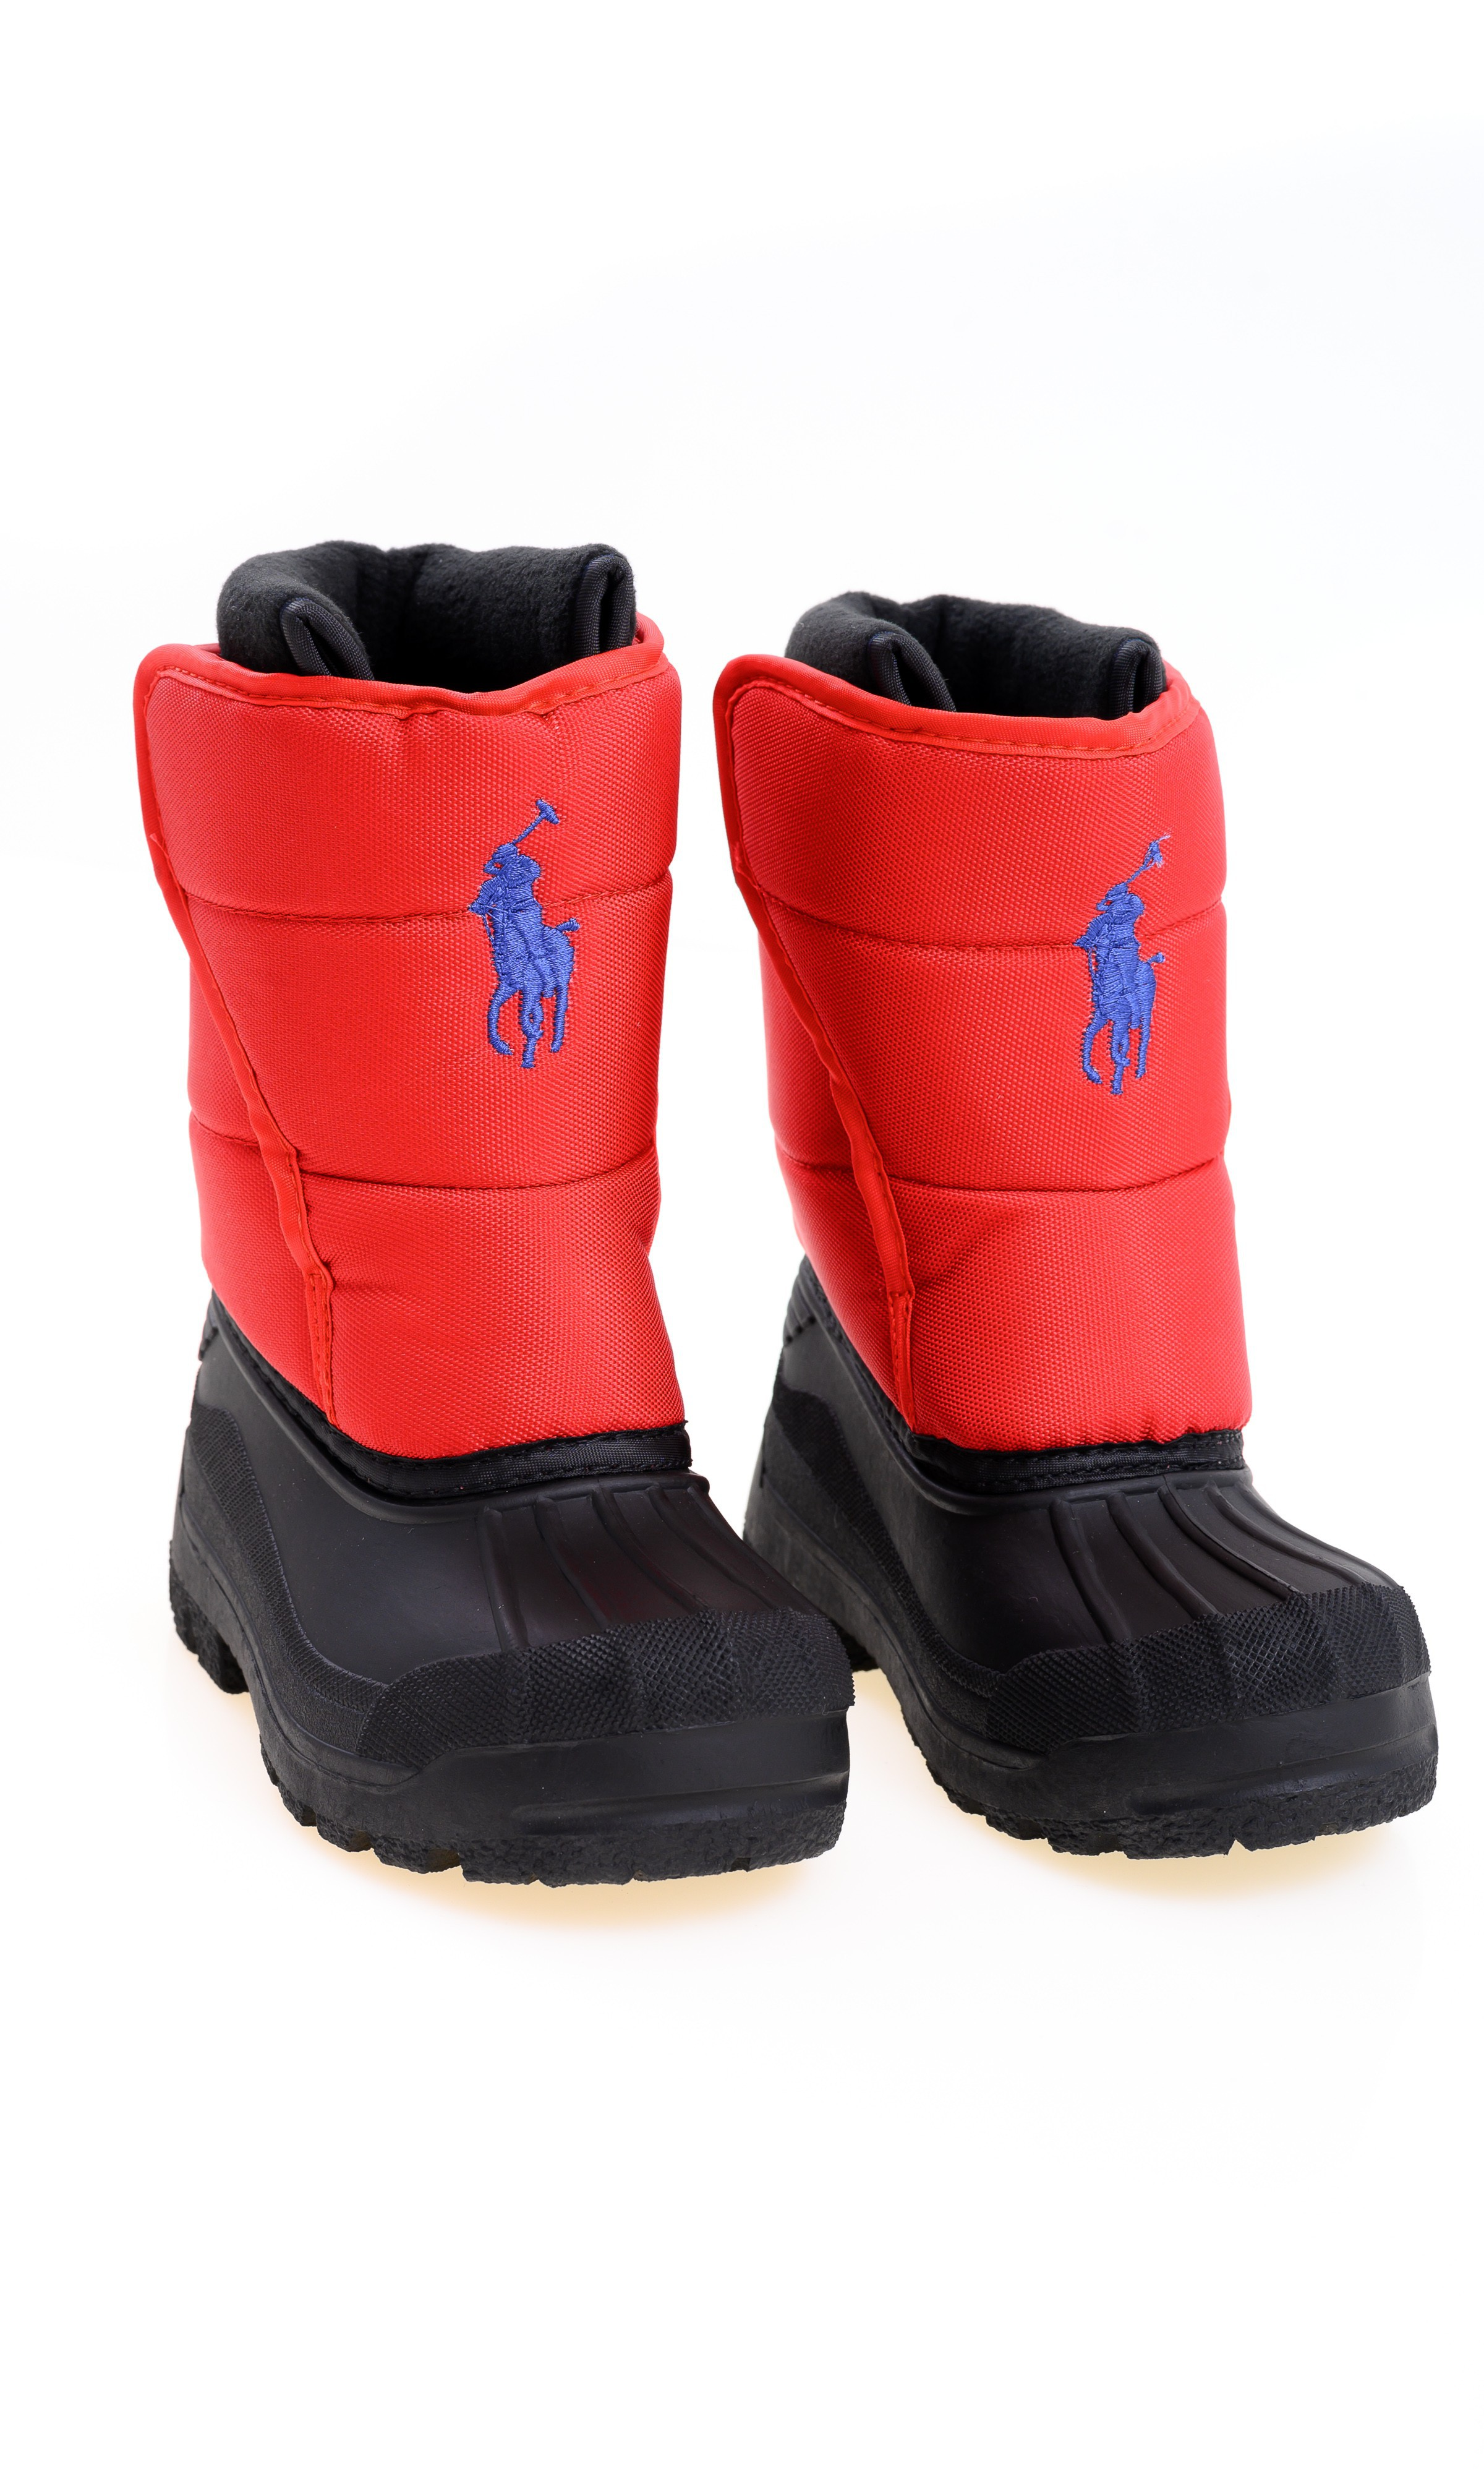 Red snow boots for children, Polo Ralph